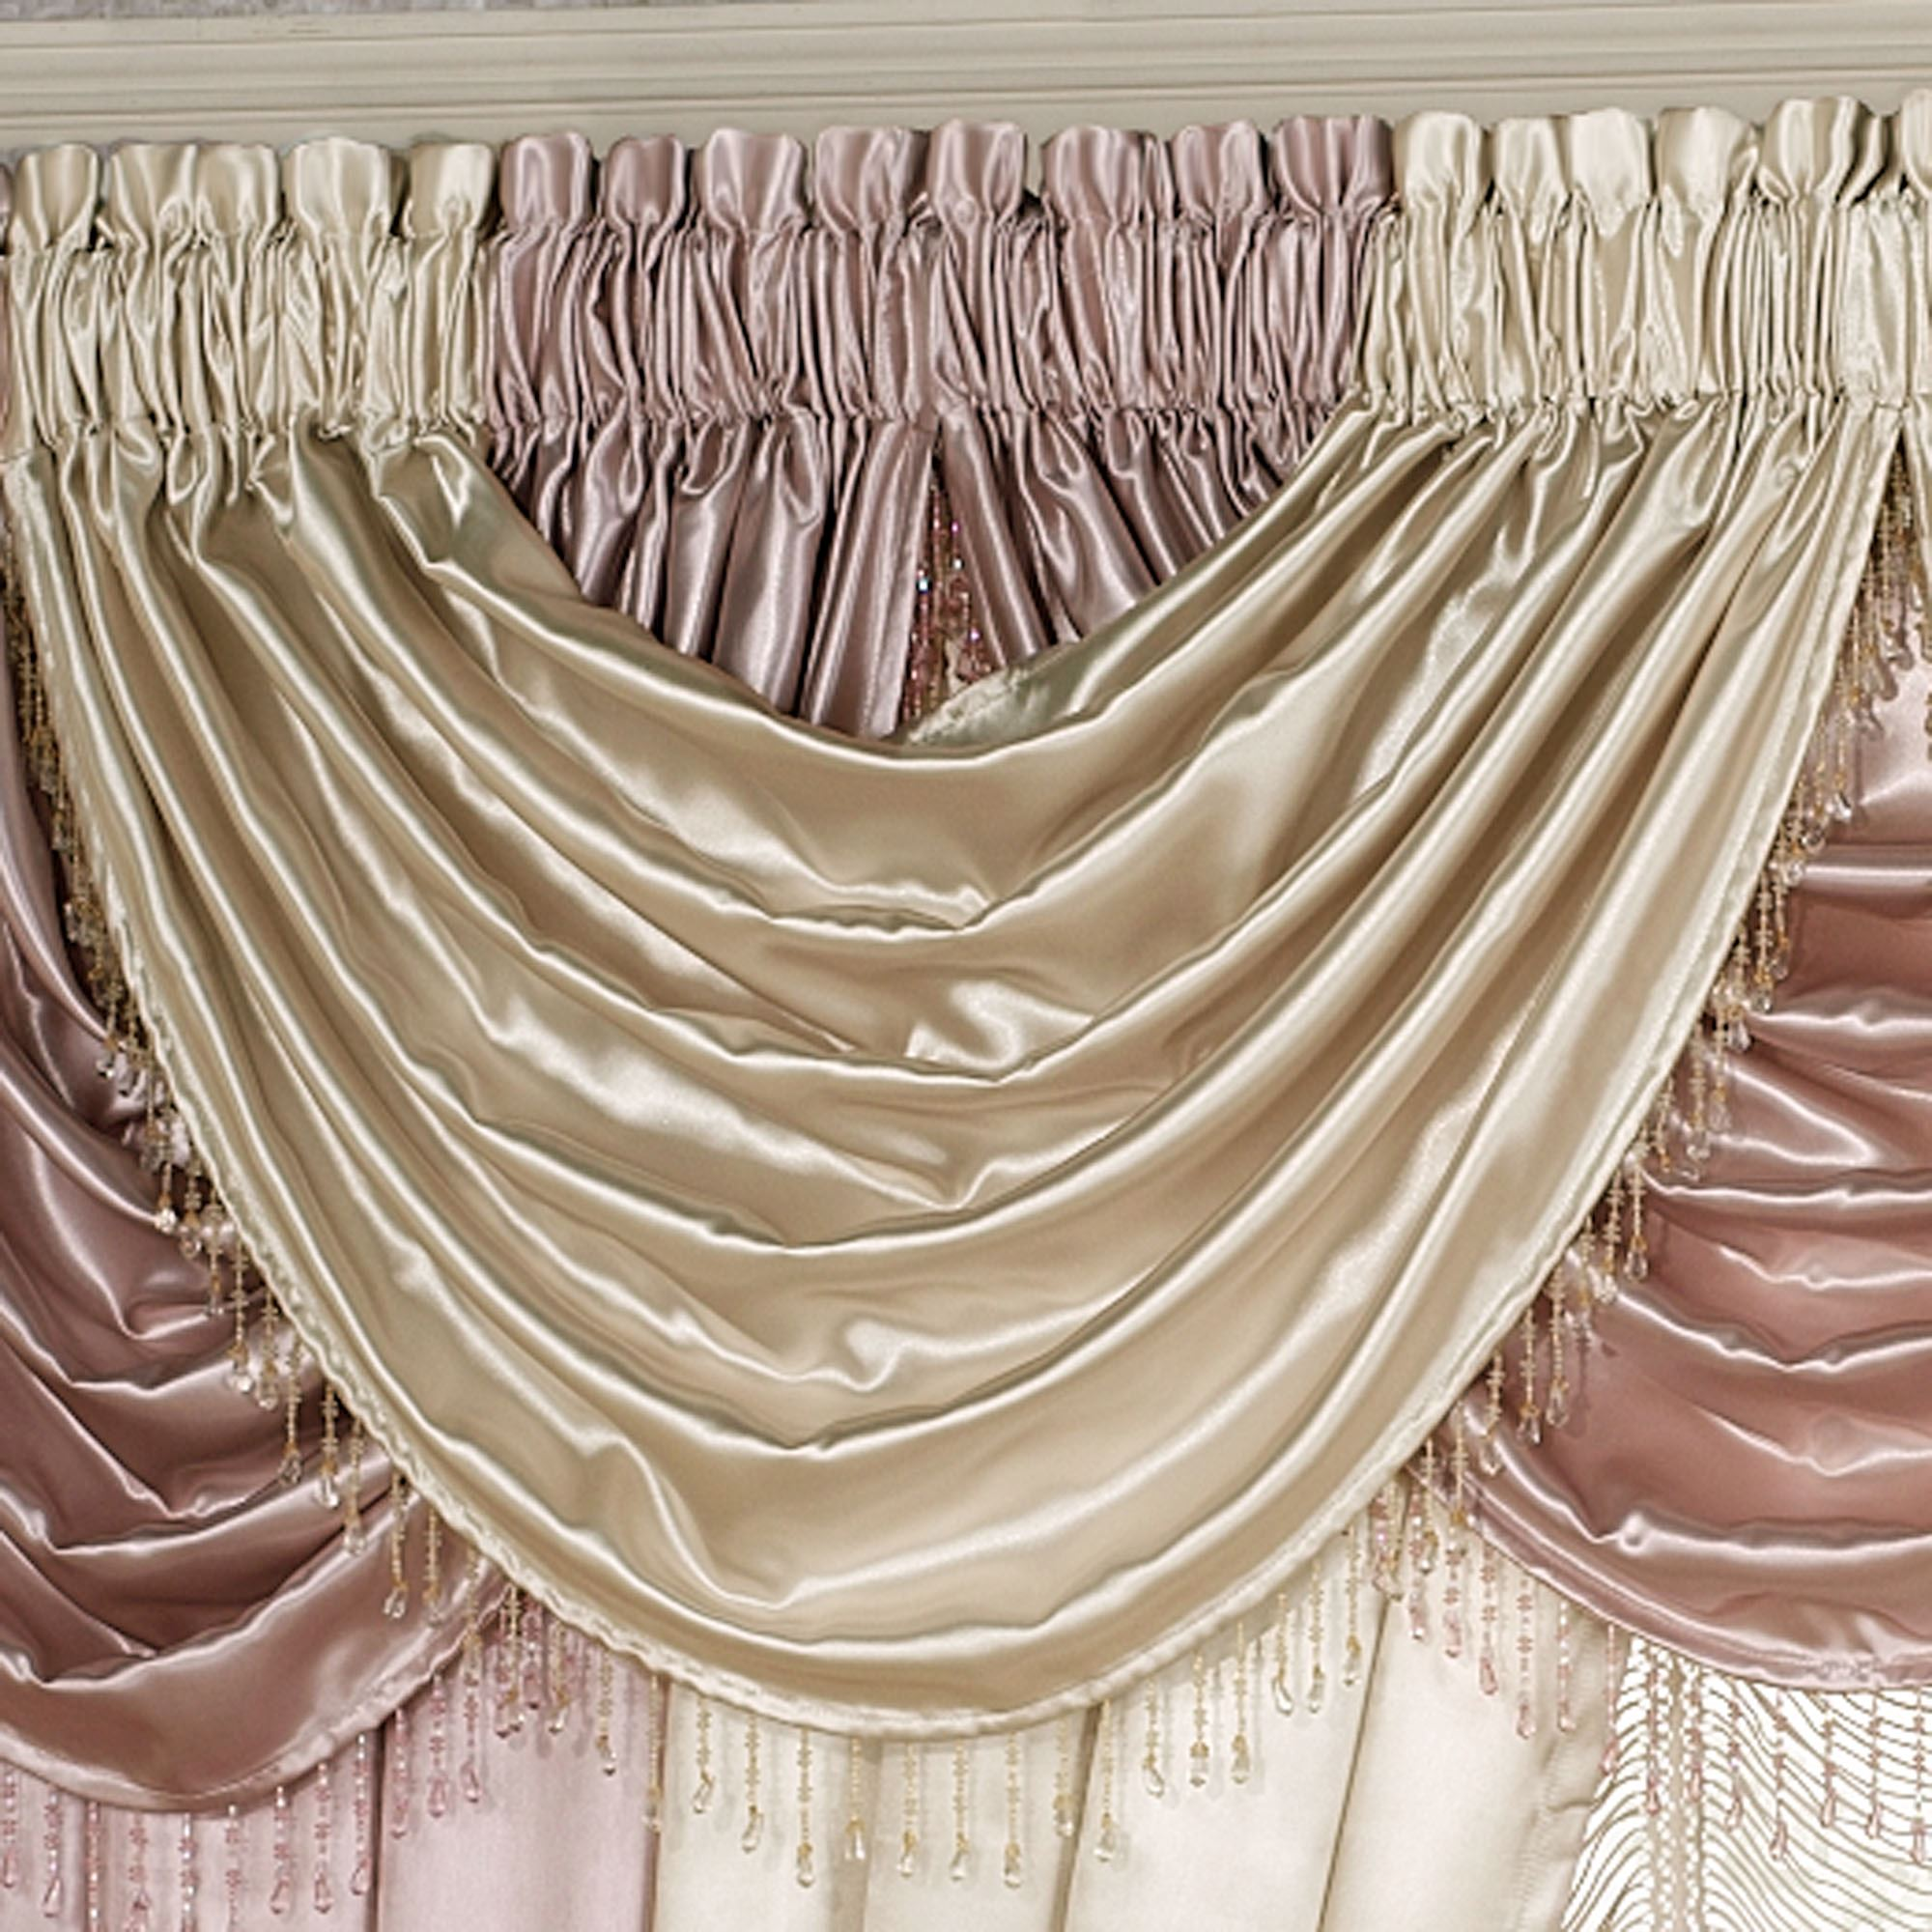 waterfall treatments how pin to scarf and window valance sheer semi hang ombre